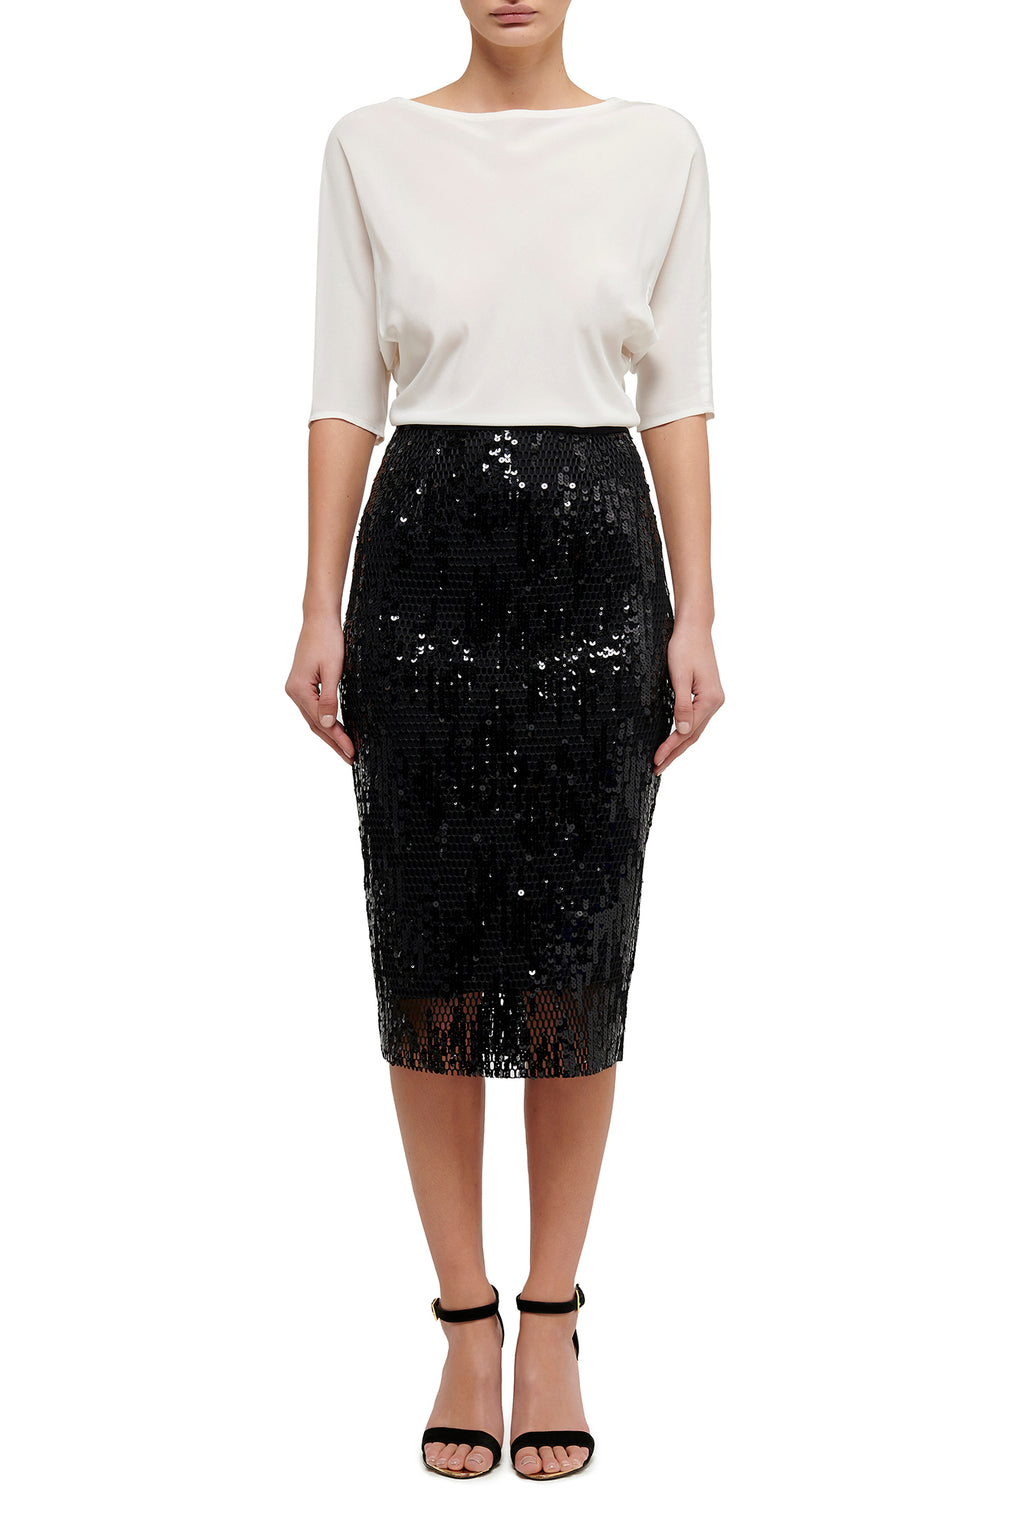 Fashion Rebellion Mesh Pencil Skirt